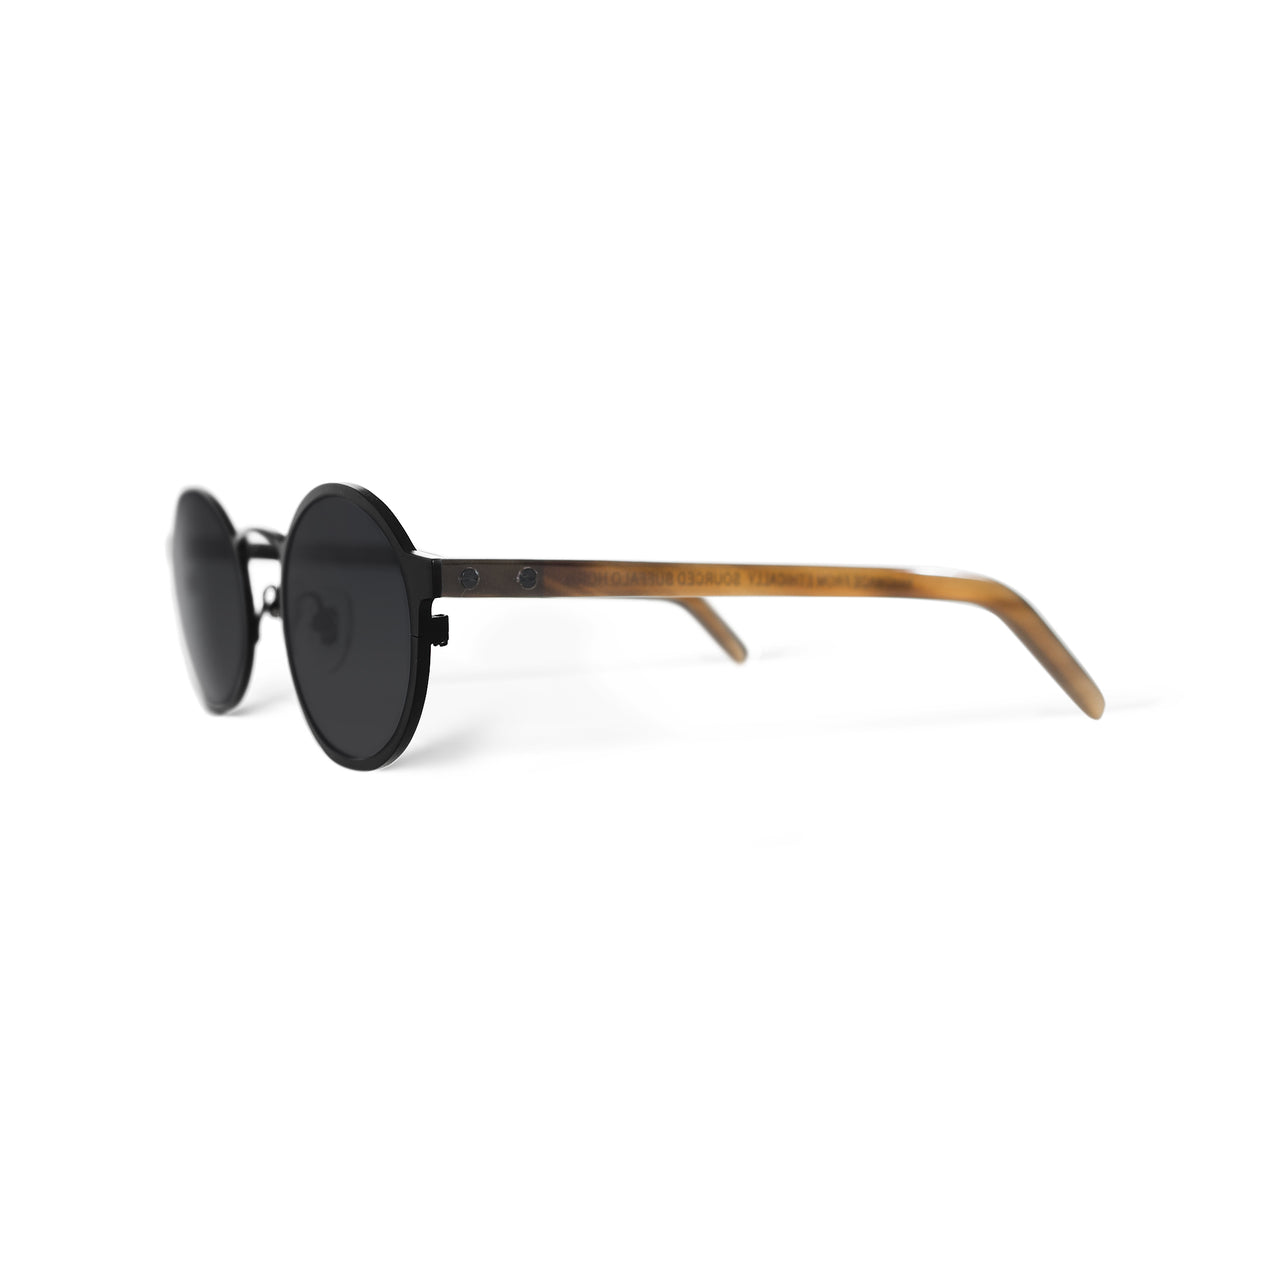 Metal / Horn. Matte Black / Blonde. Black Lens. - BLYSZAK eyewear eyewear - eyewear, optical, sunglasses